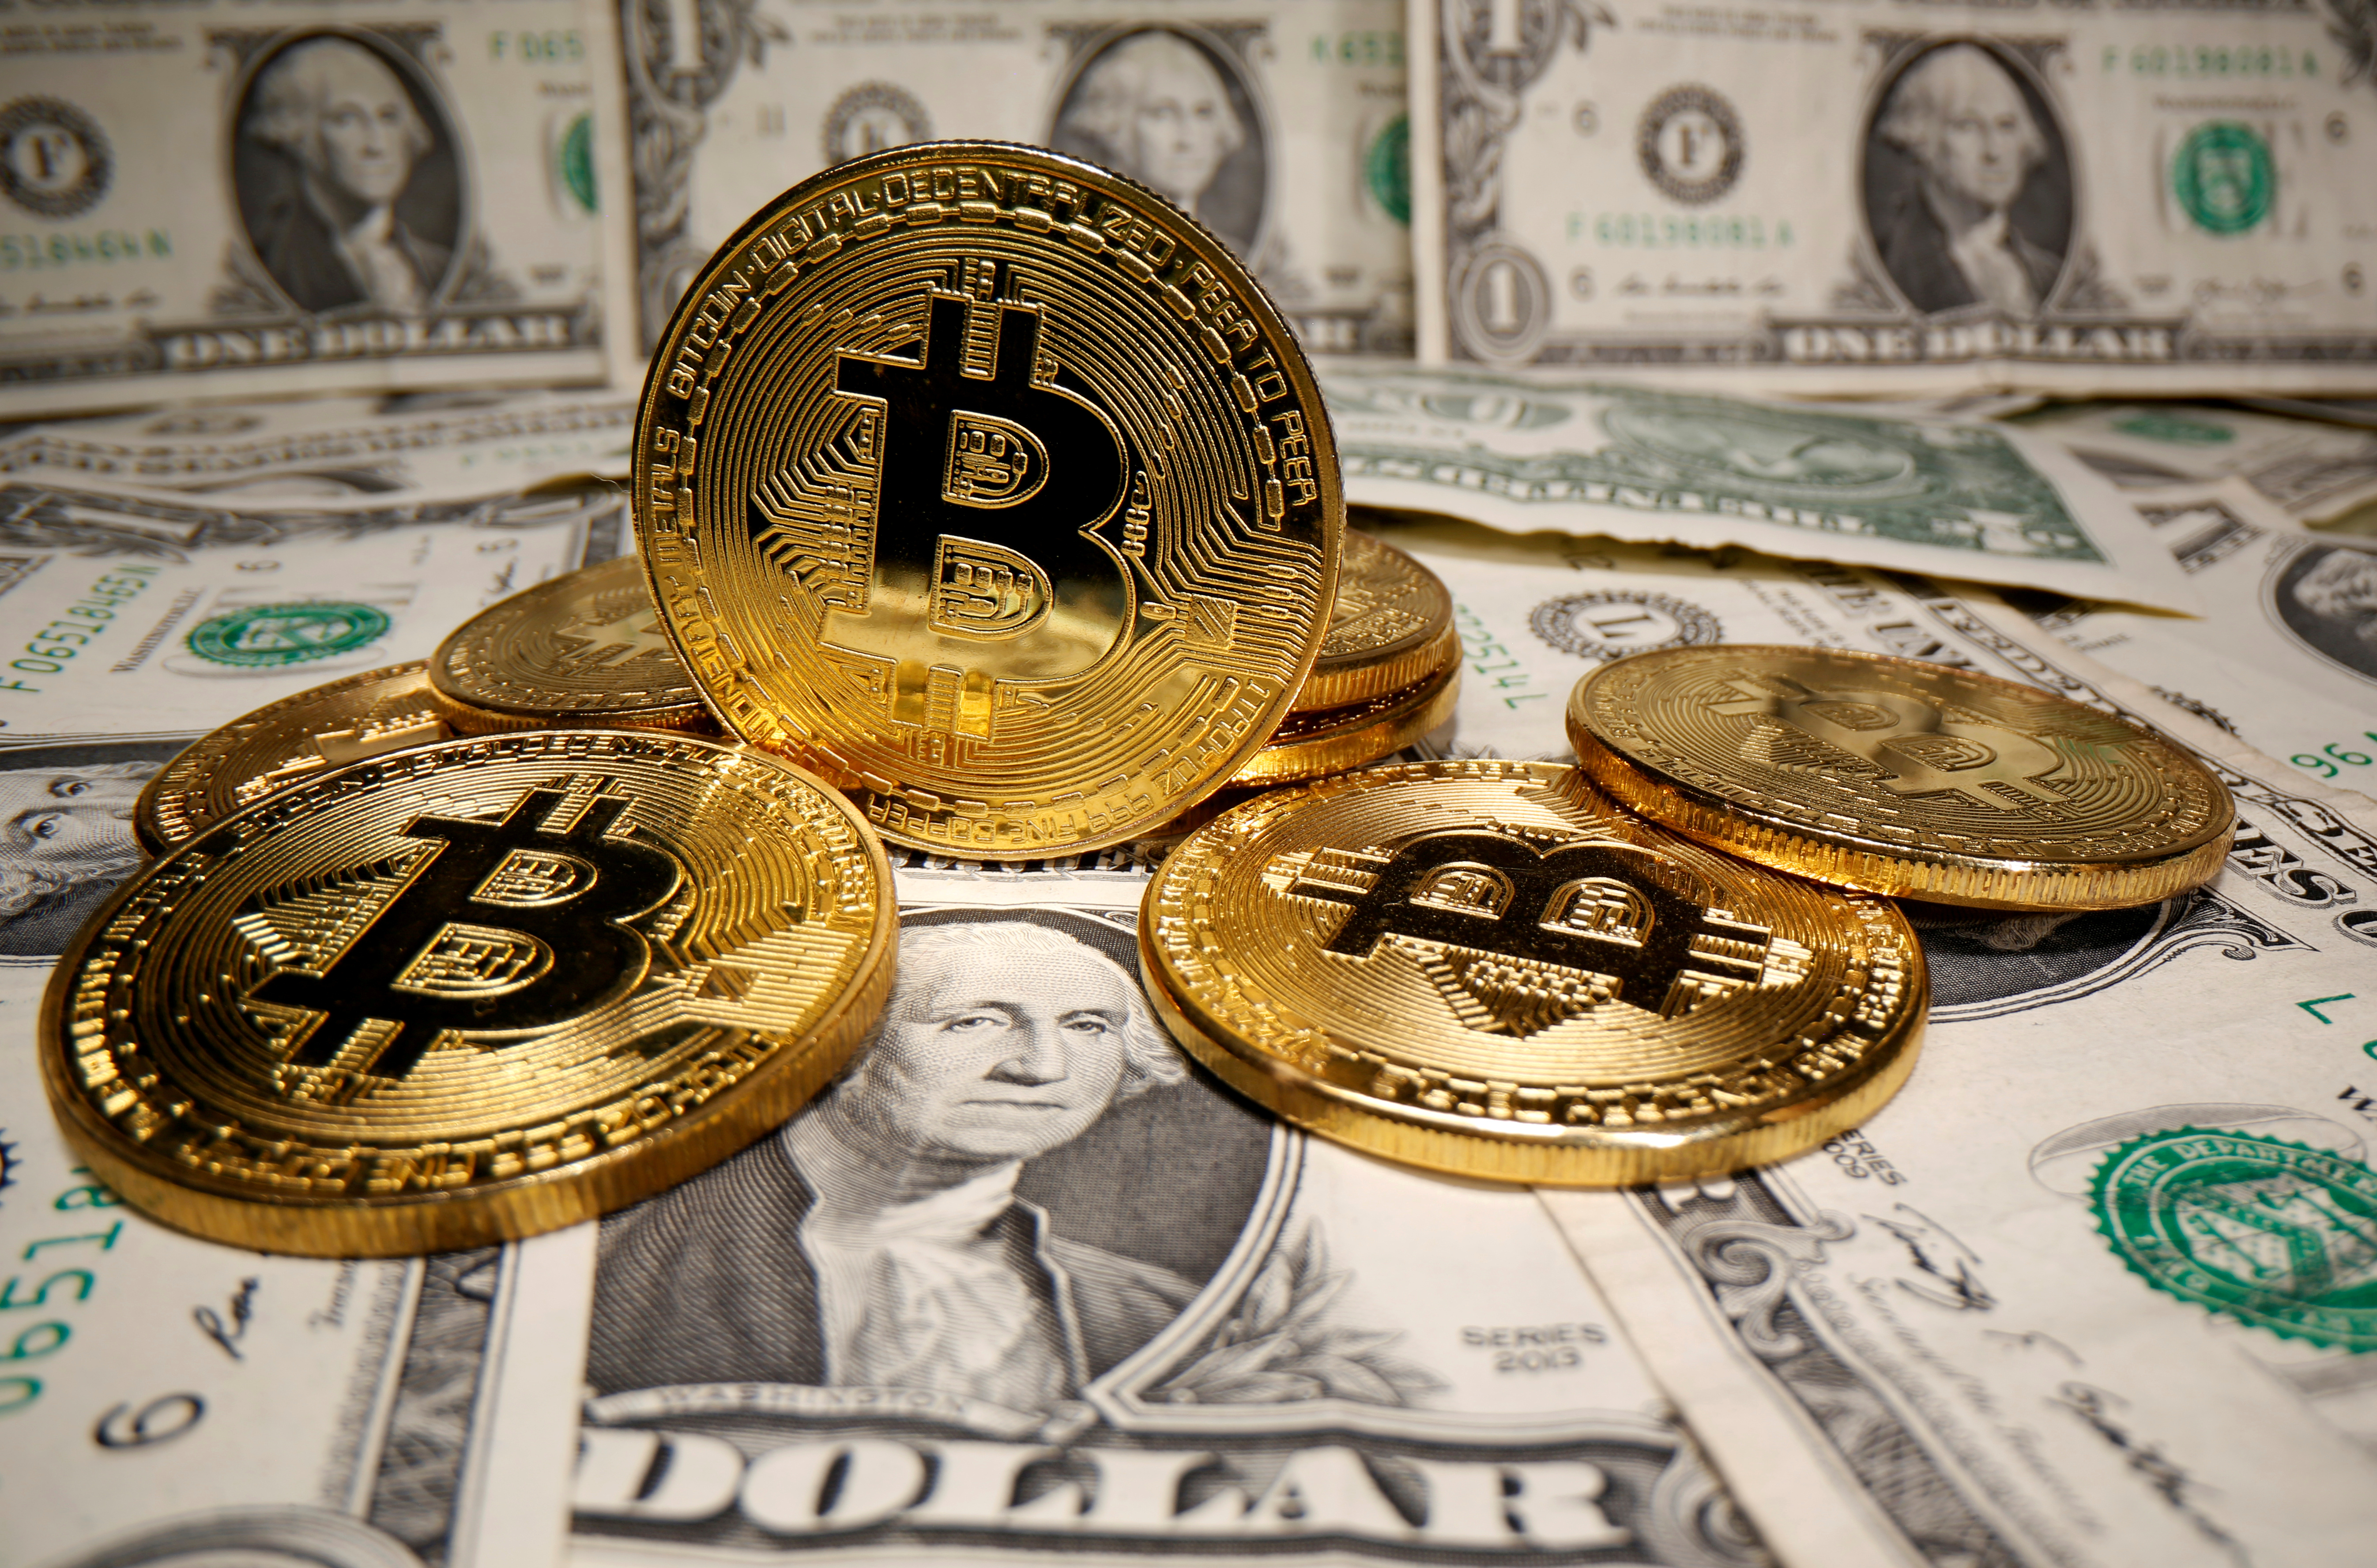 Representations of virtual currency Bitcoin are placed on U.S. Dollar banknotes in this illustration taken May 26, 2020. REUTERS/Dado Ruvic/Illustration